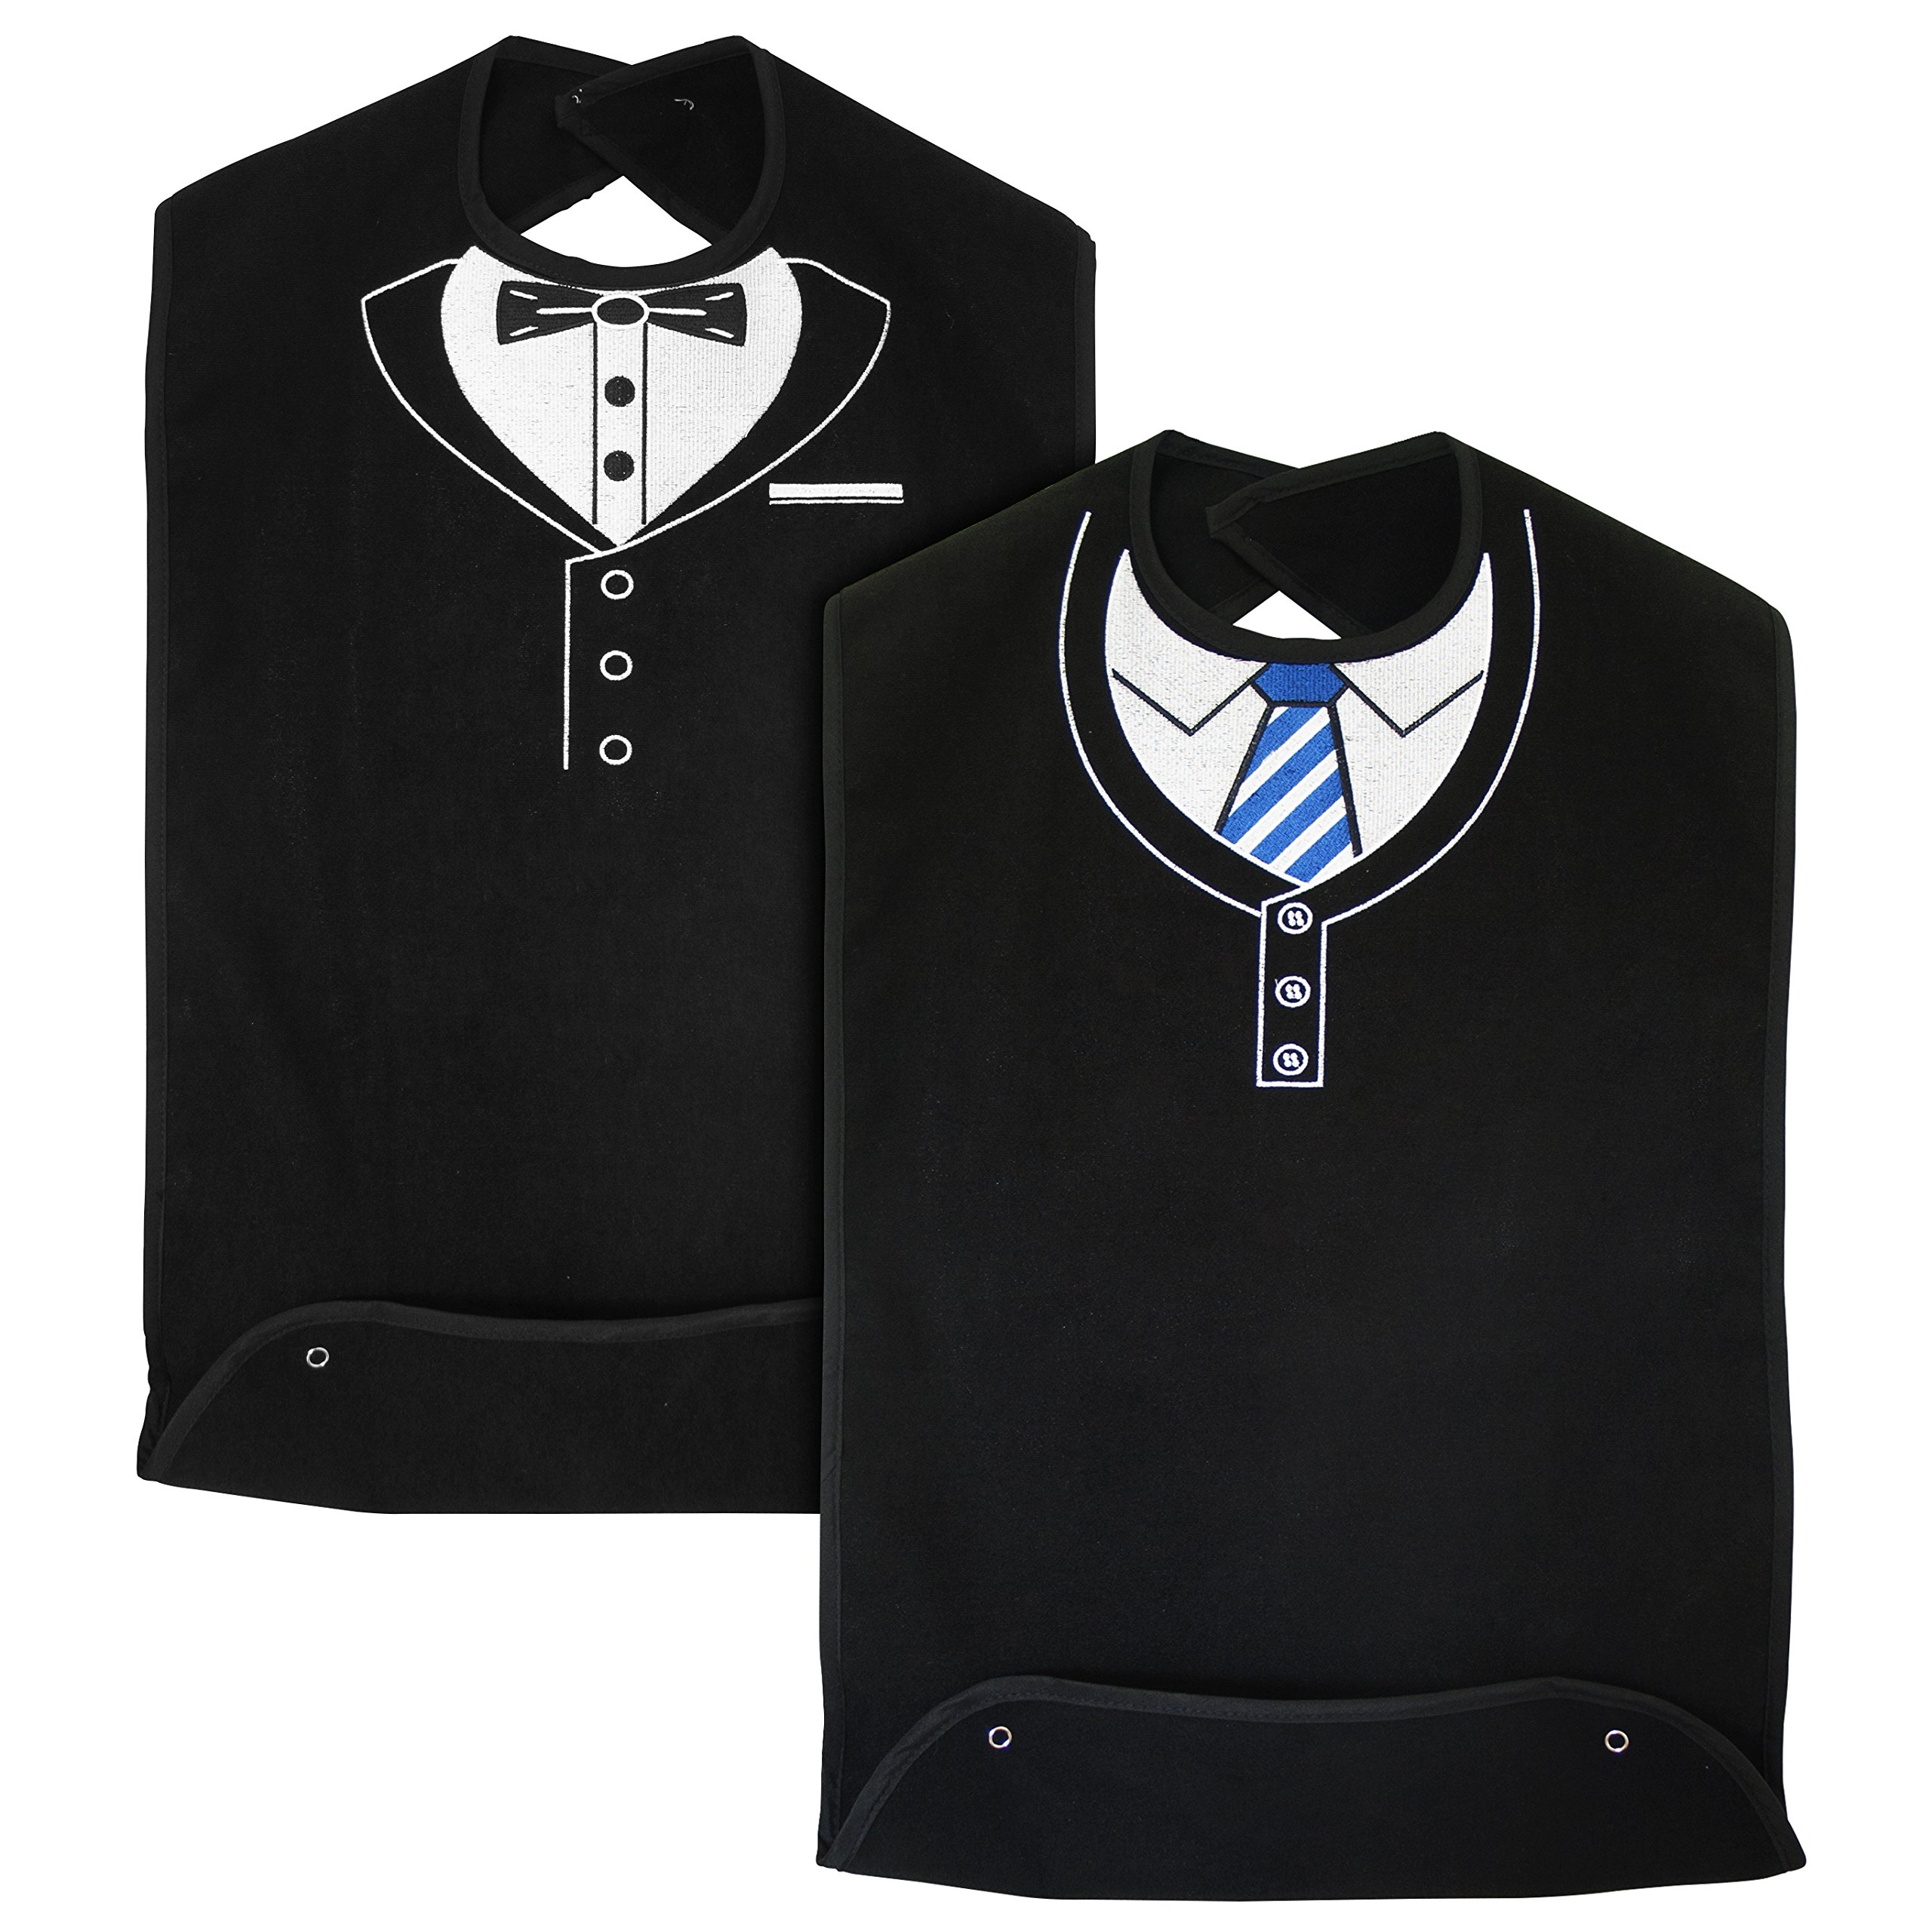 Classy Pal | Adult Bib for Men with Embroidered Design. Waterproof, Reusable & Washable | 2 Pack (Blue Tie + Tuxedo)